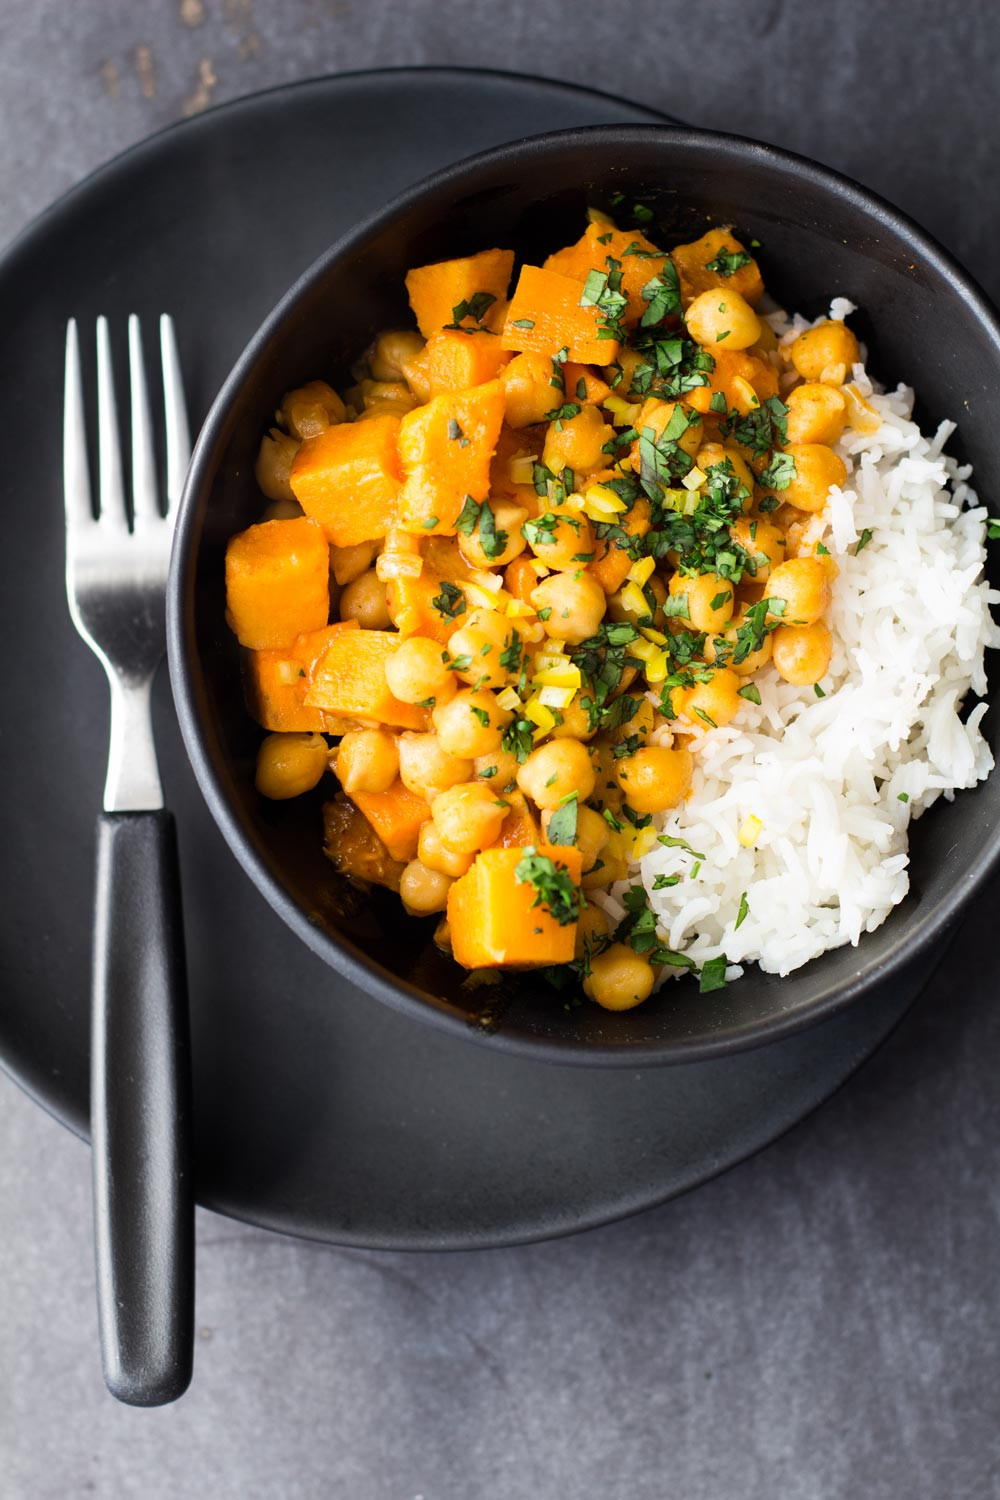 Sweet Potato Recipes Vegan  Vegan Sweet Potato and Chickpea Curry Green Healthy Cooking